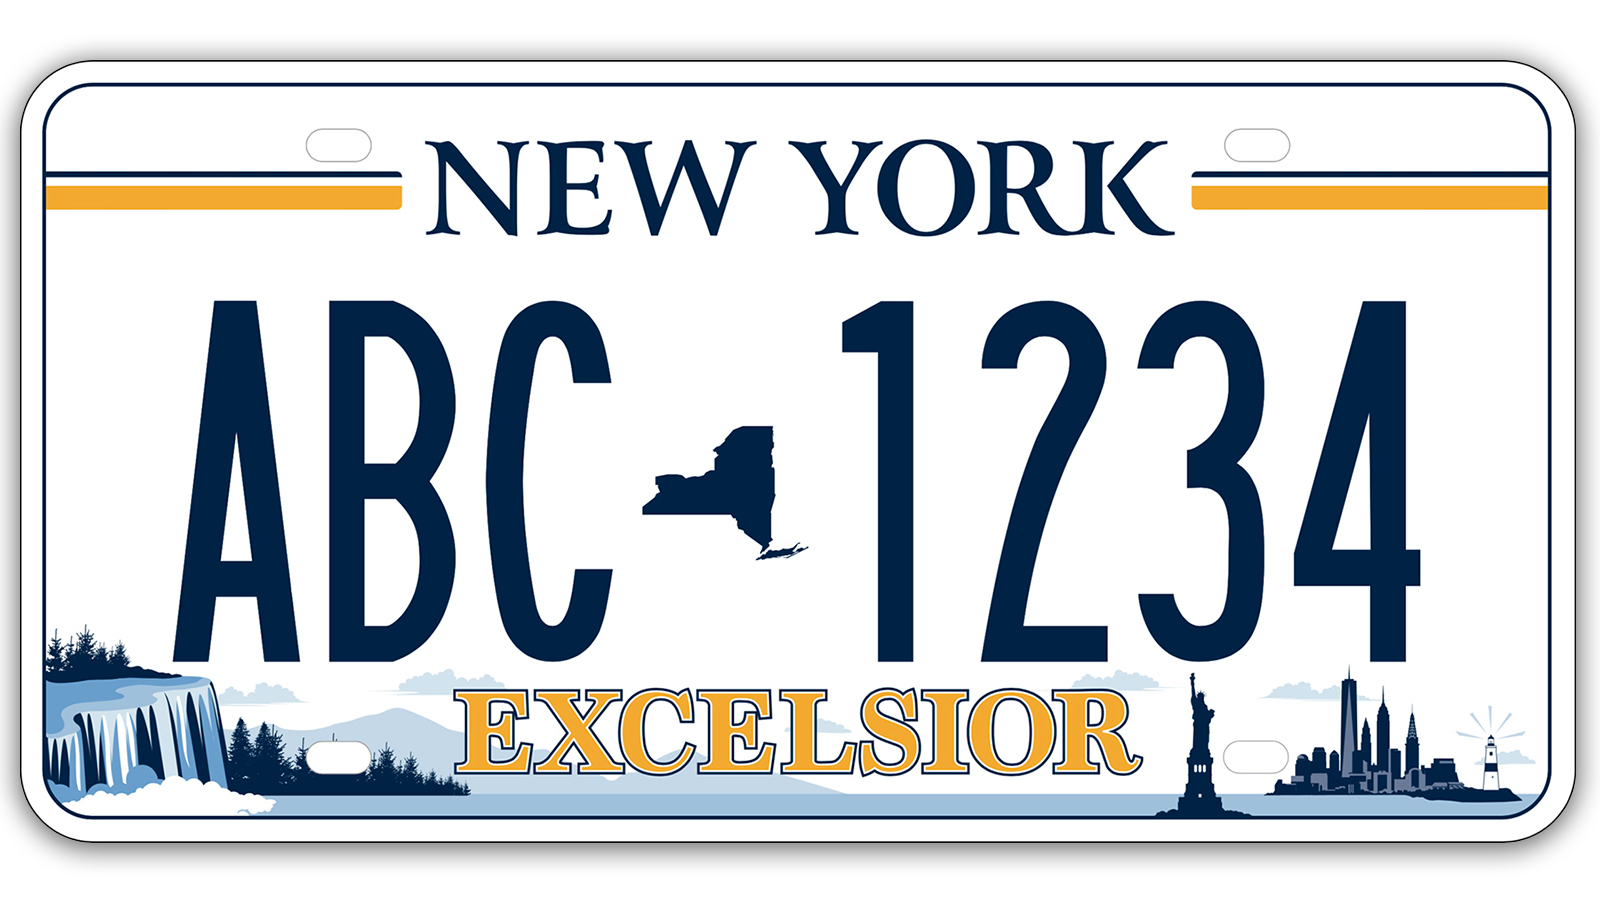 Winning license plate features iconic Long Island landmark